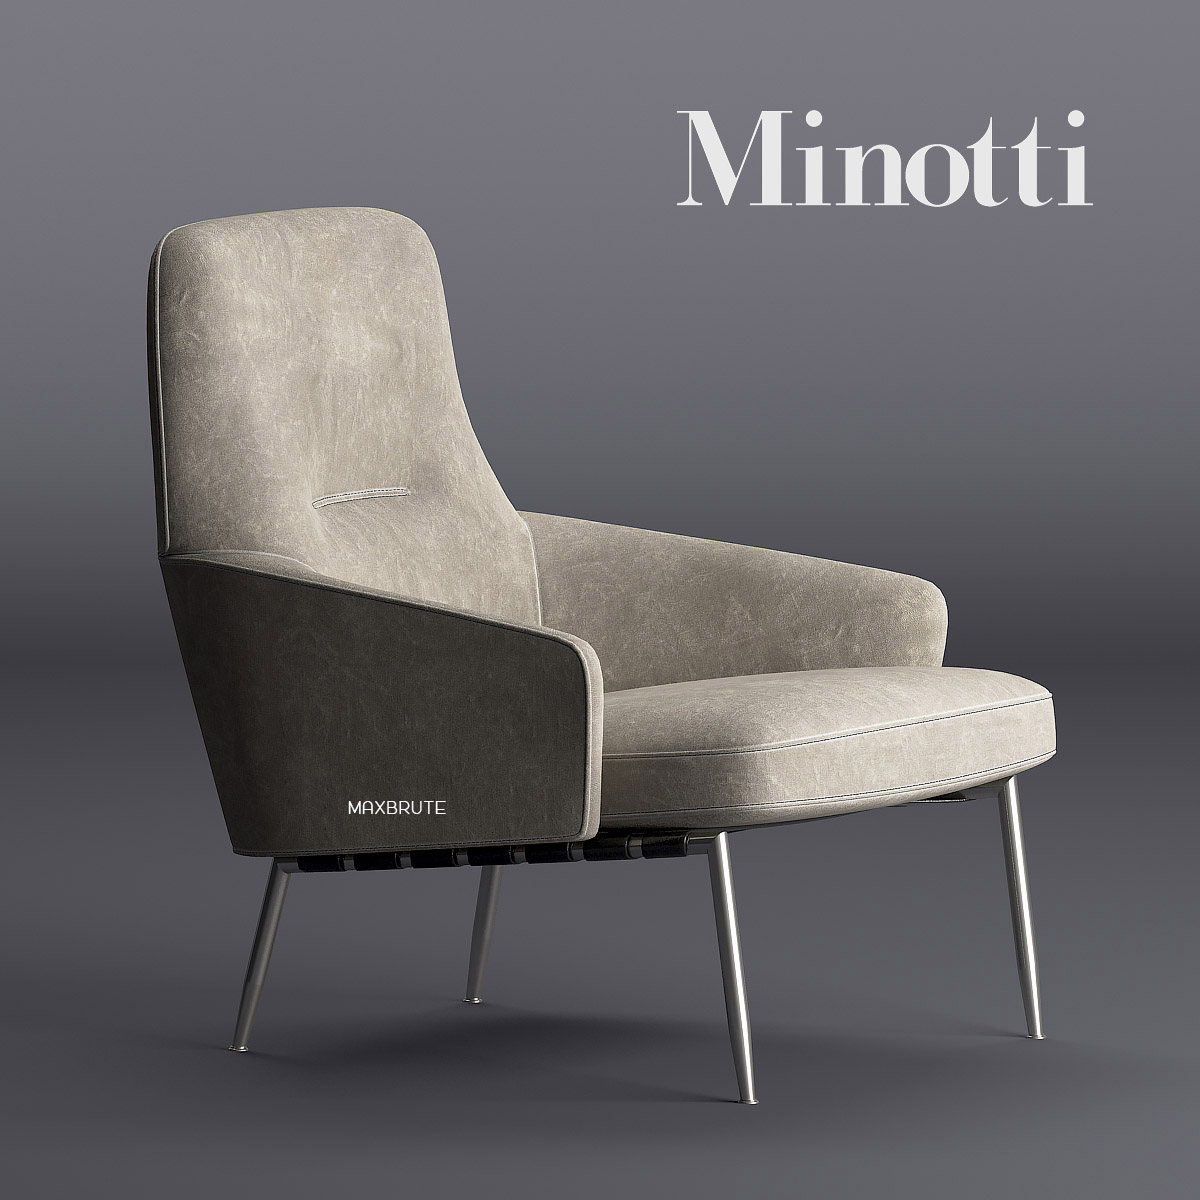 kartell sofa largo west elm henry bed review minotti coley armchair 3dsmax 3dmodel - modern with grey color